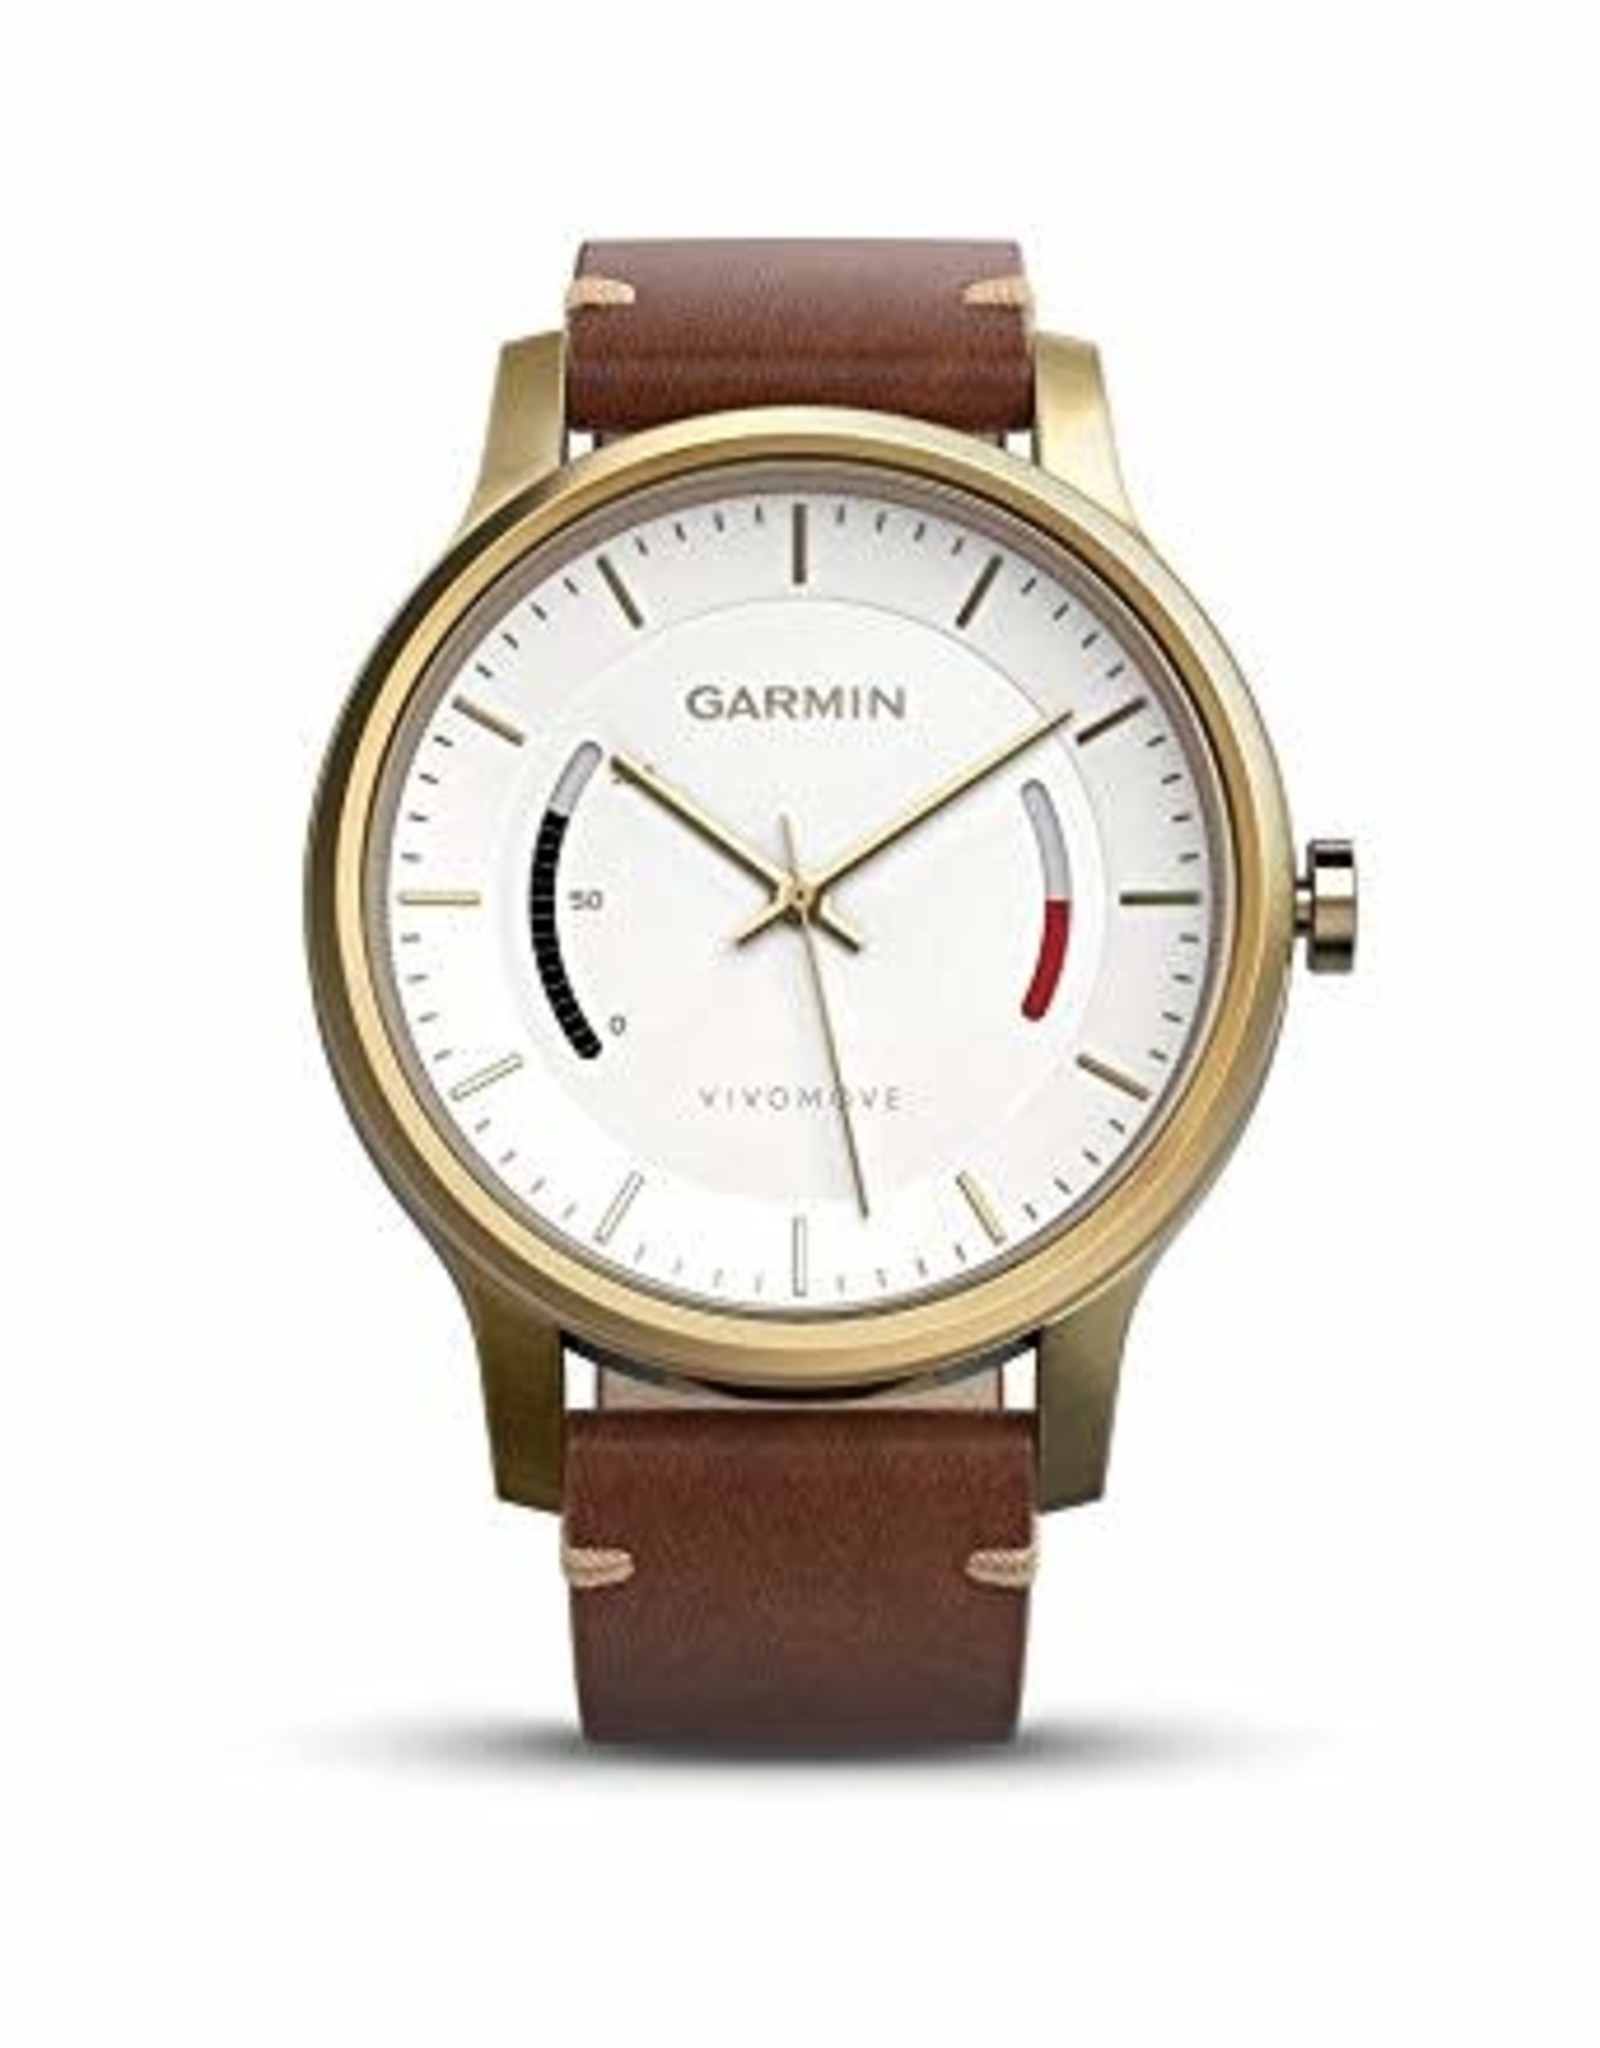 GARMIN Garmin, Vivomove Premium, Watch, Gold-tone steel/ Light brown leather band, 010-01597-23